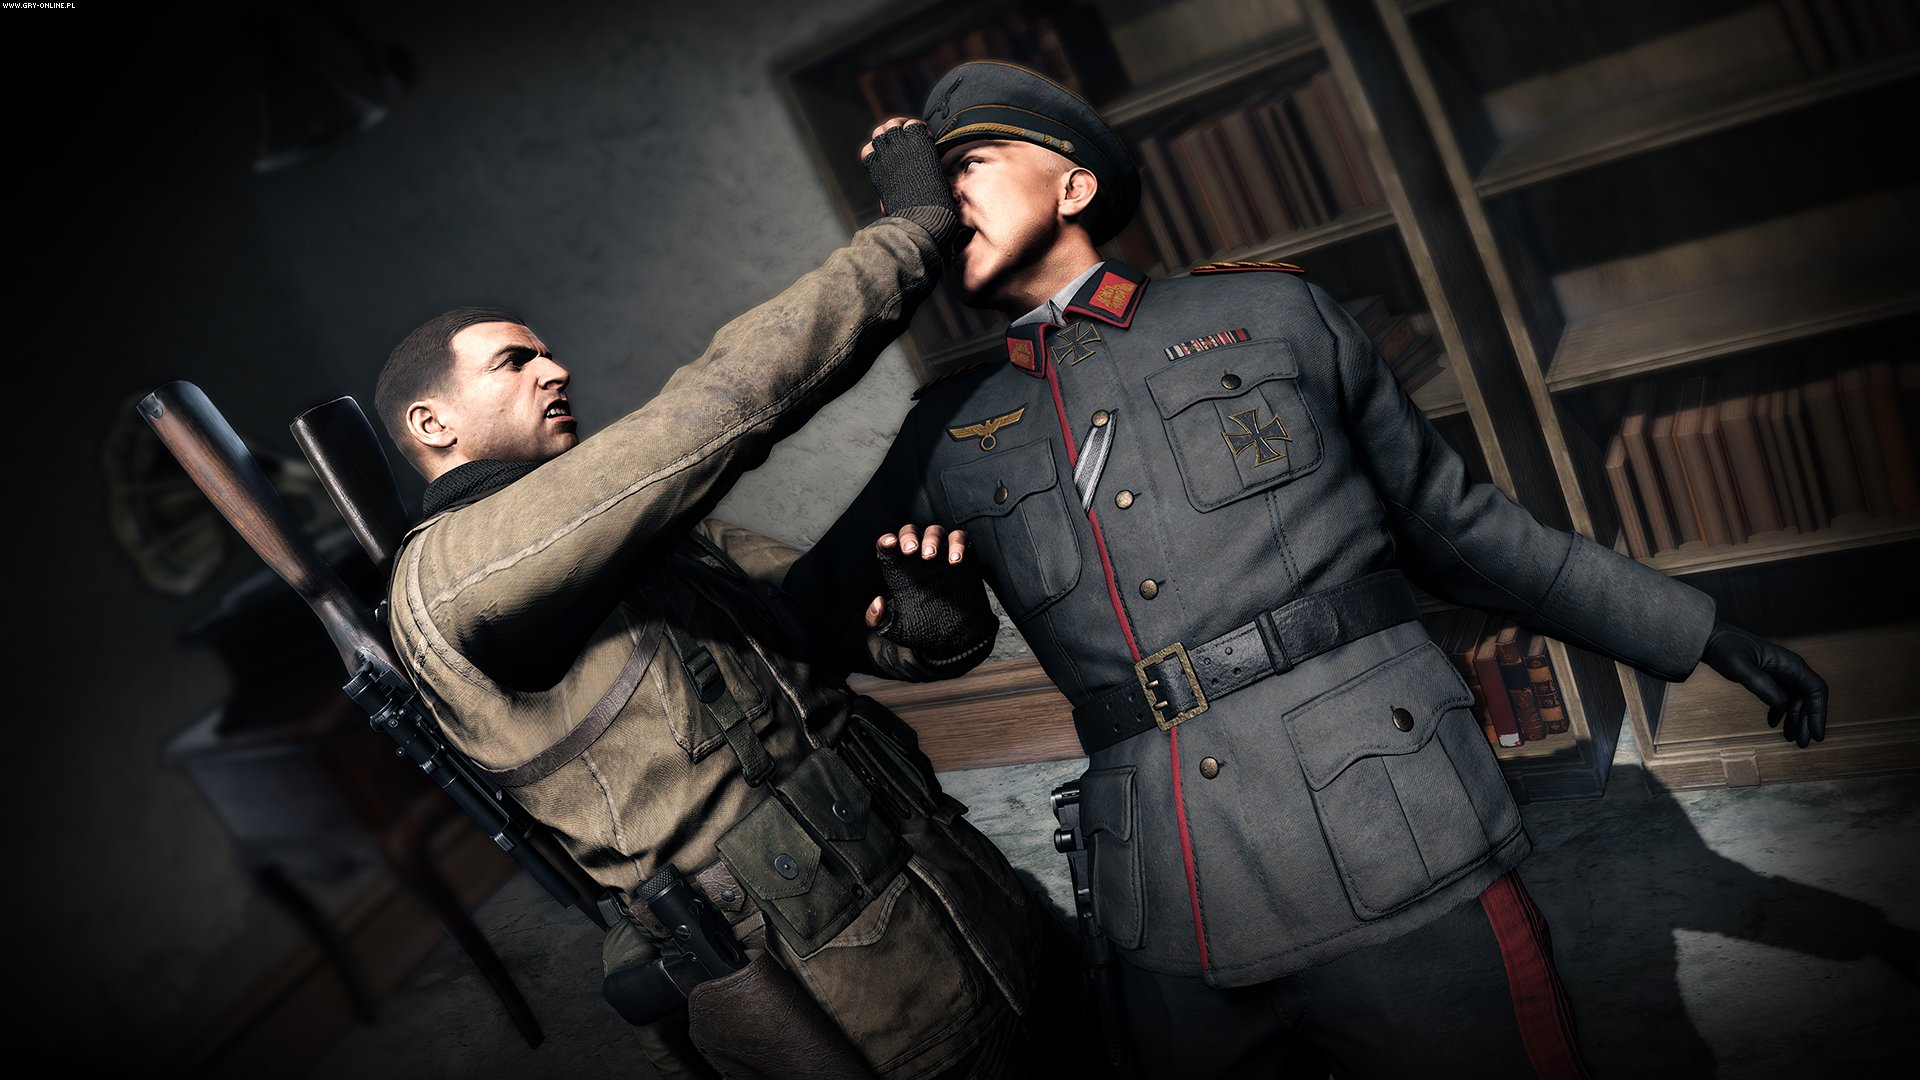 Sniper Elite 4 PC, PS4, XONE Games Image 17/26, Rebellion